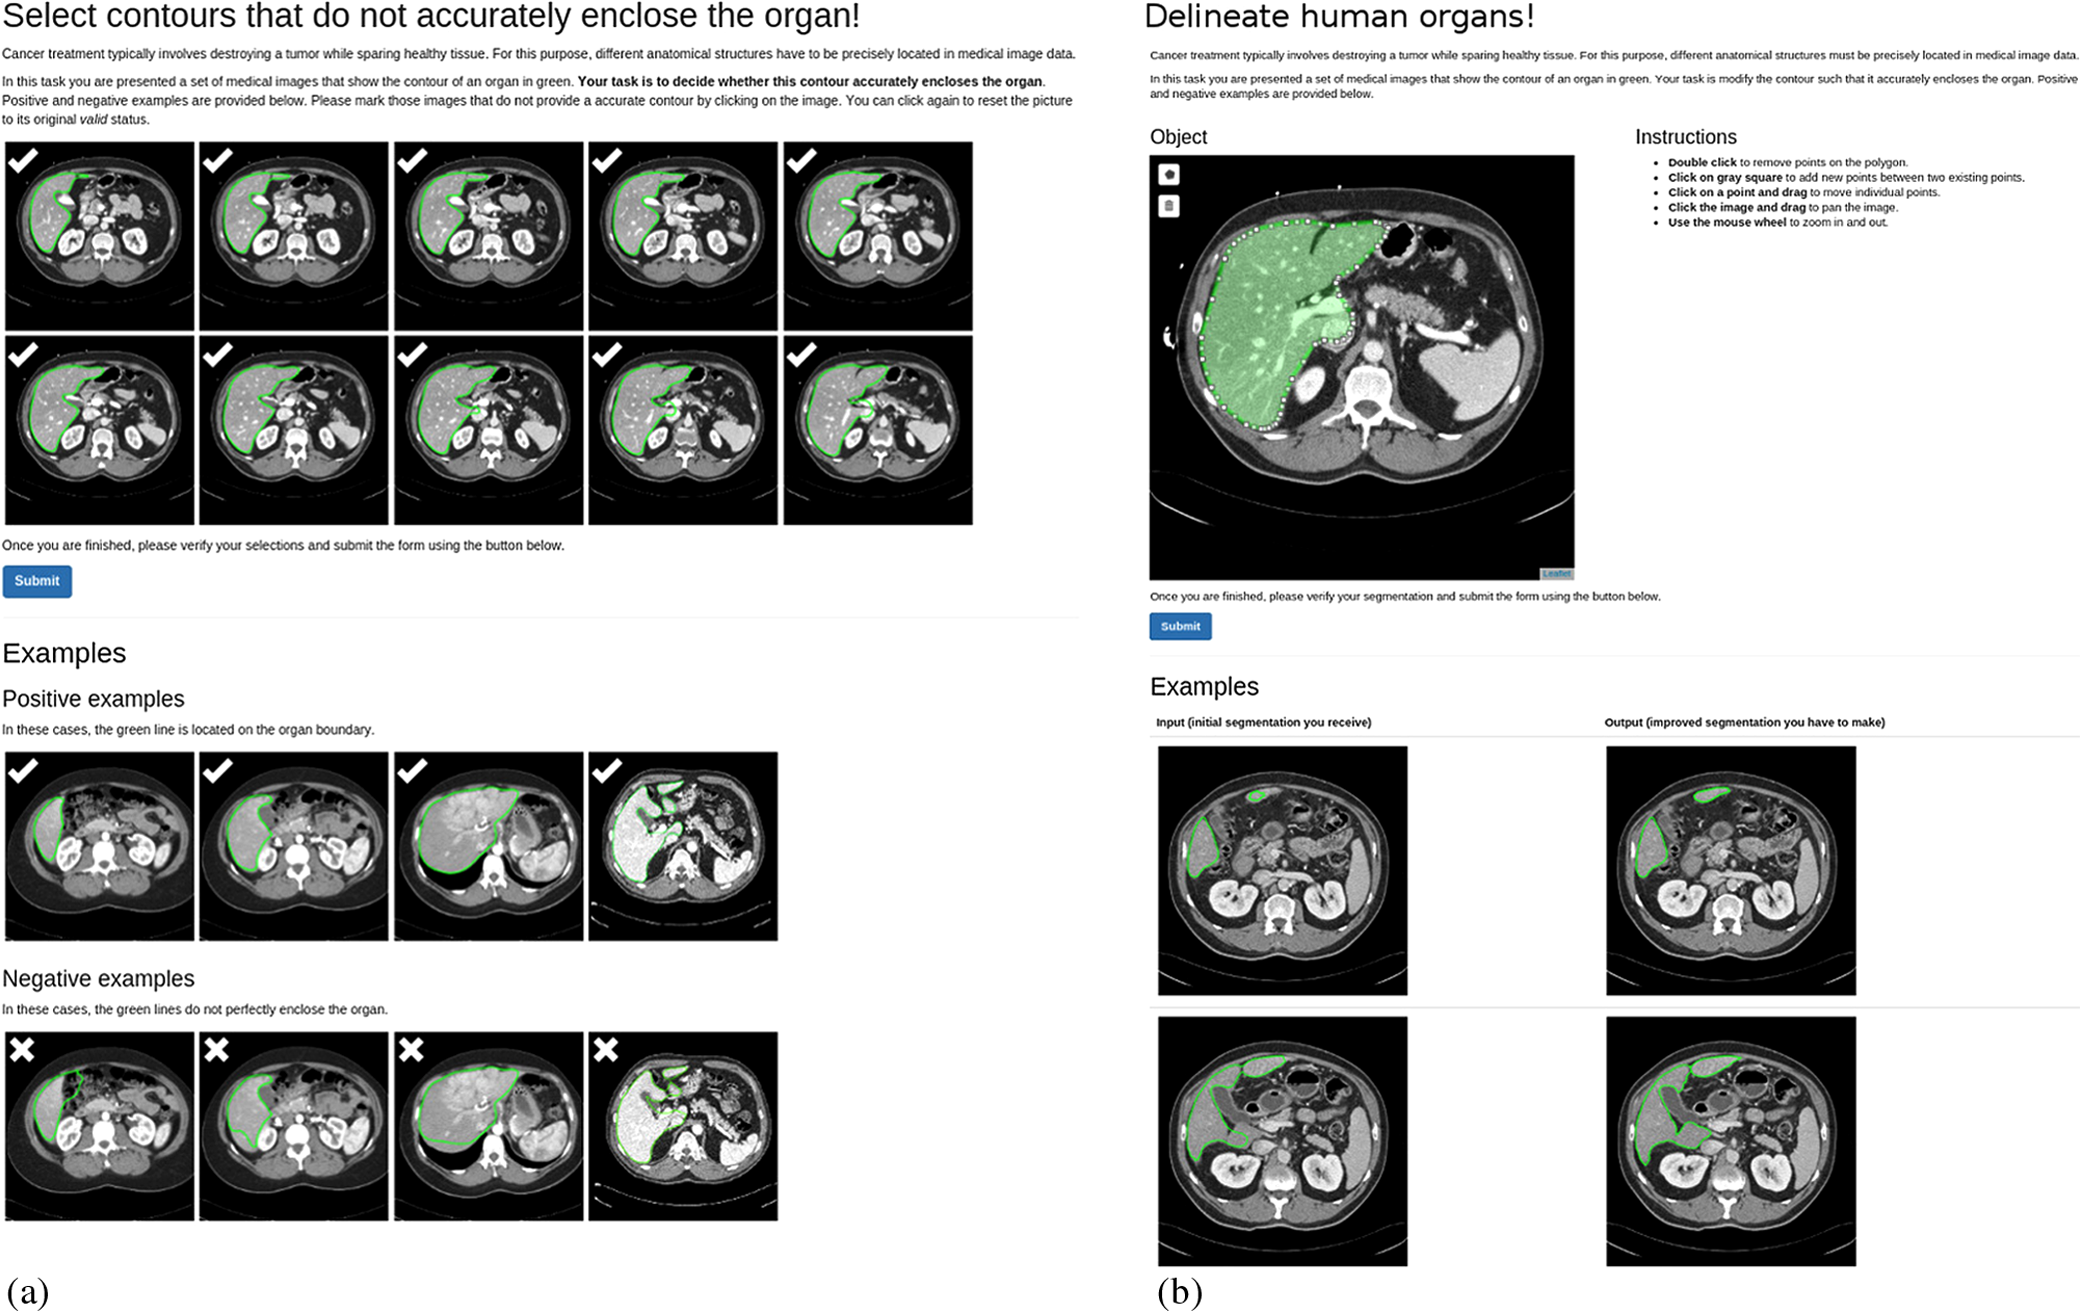 Large-scale medical image annotation with crowd-powered